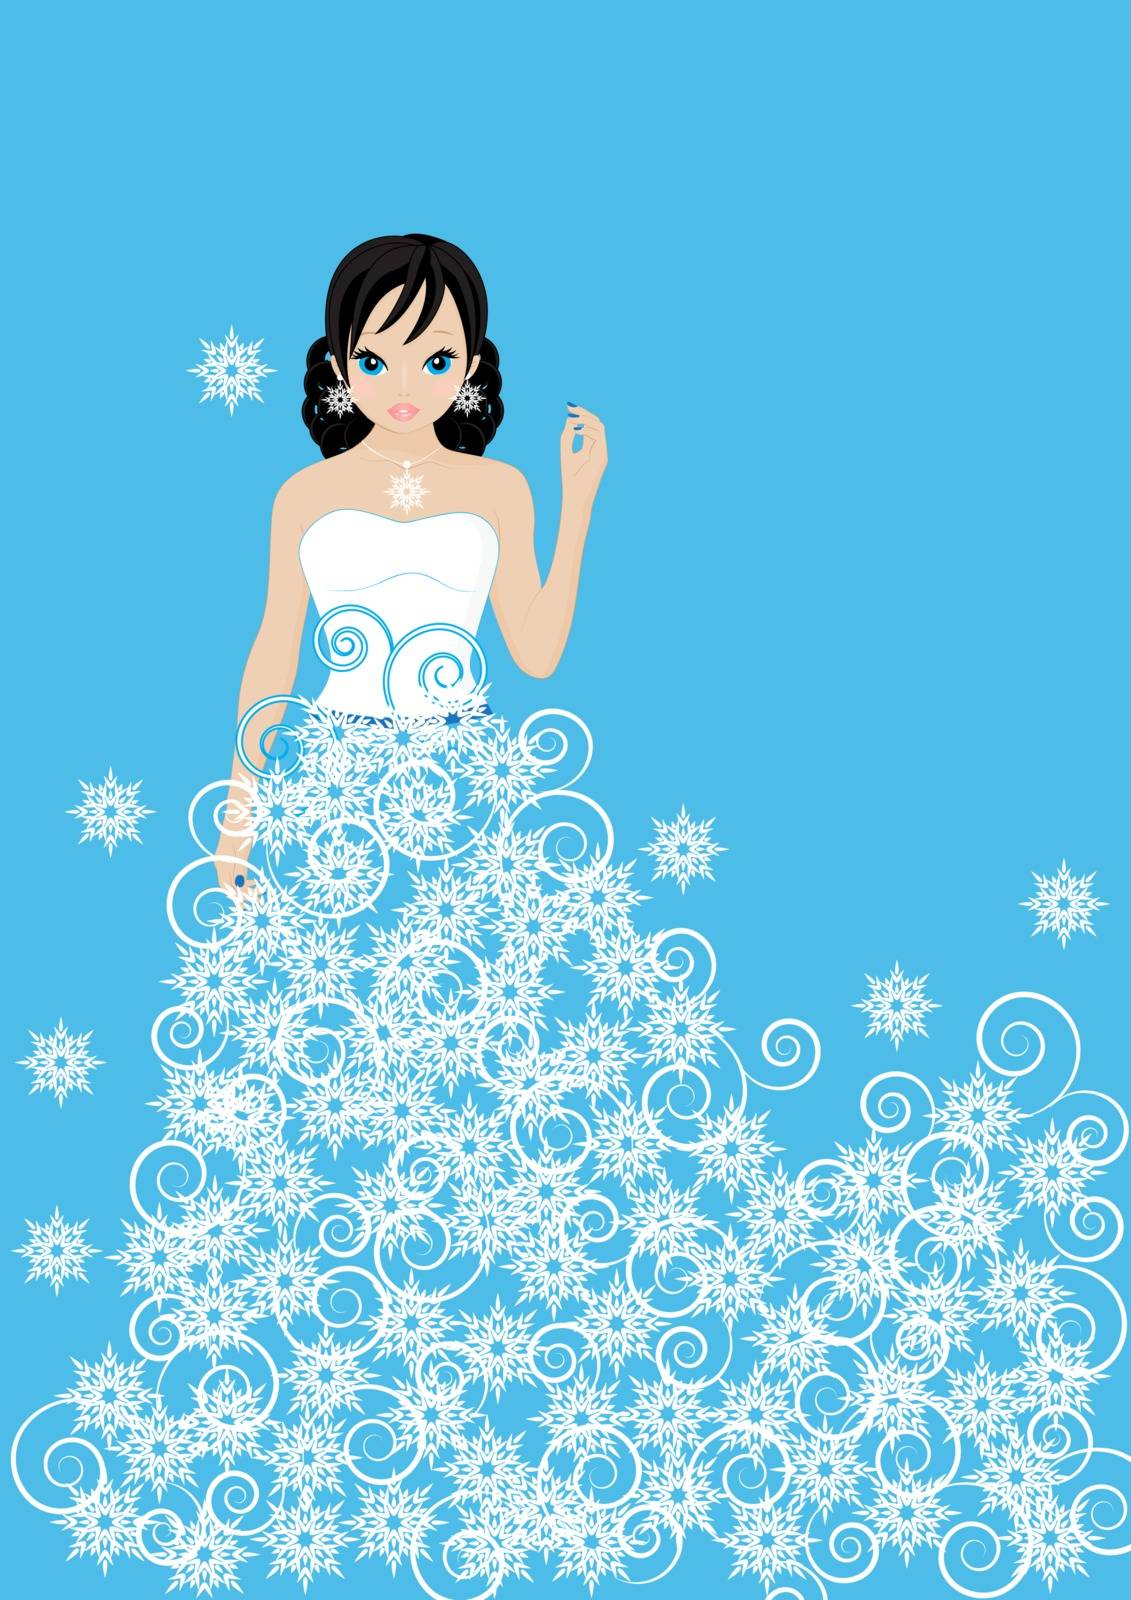 girl snow Queen in a dress made of snowflakes on blue background